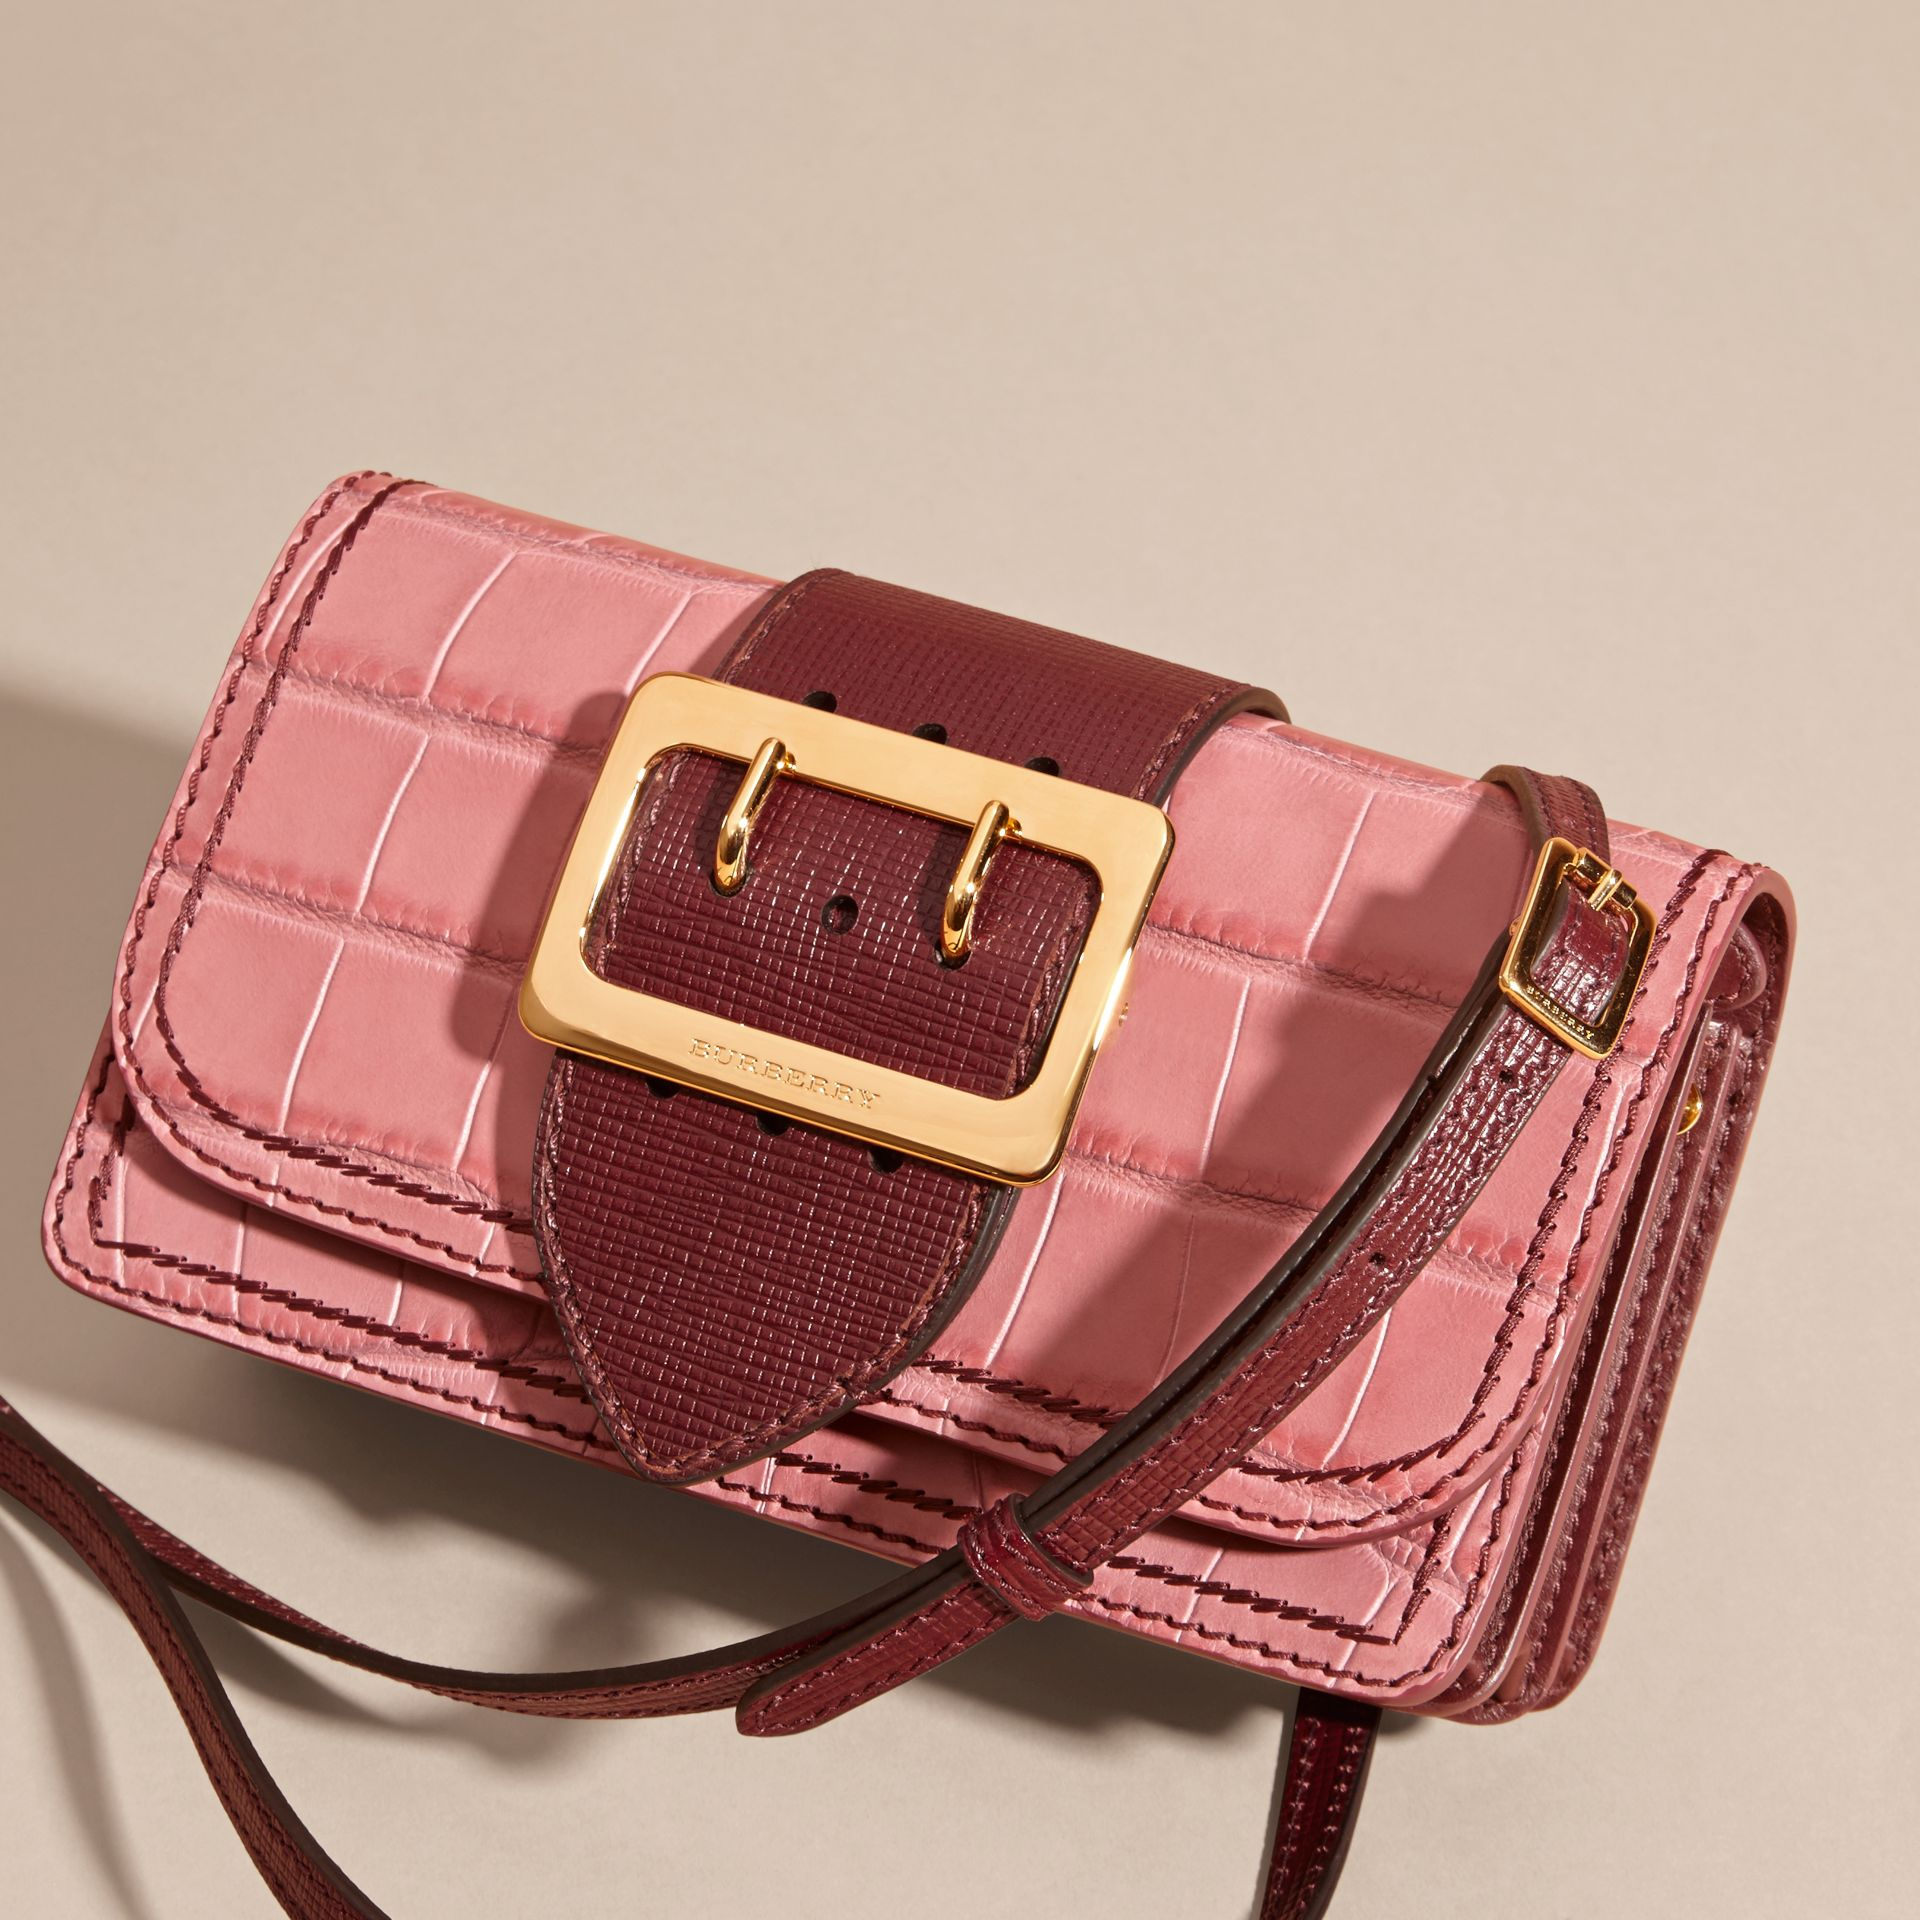 The Small Buckle Bag in Alligator and Leather in Dusky Pink/ Burgundy - Women | Burberry United Kingdom - gallery image 8